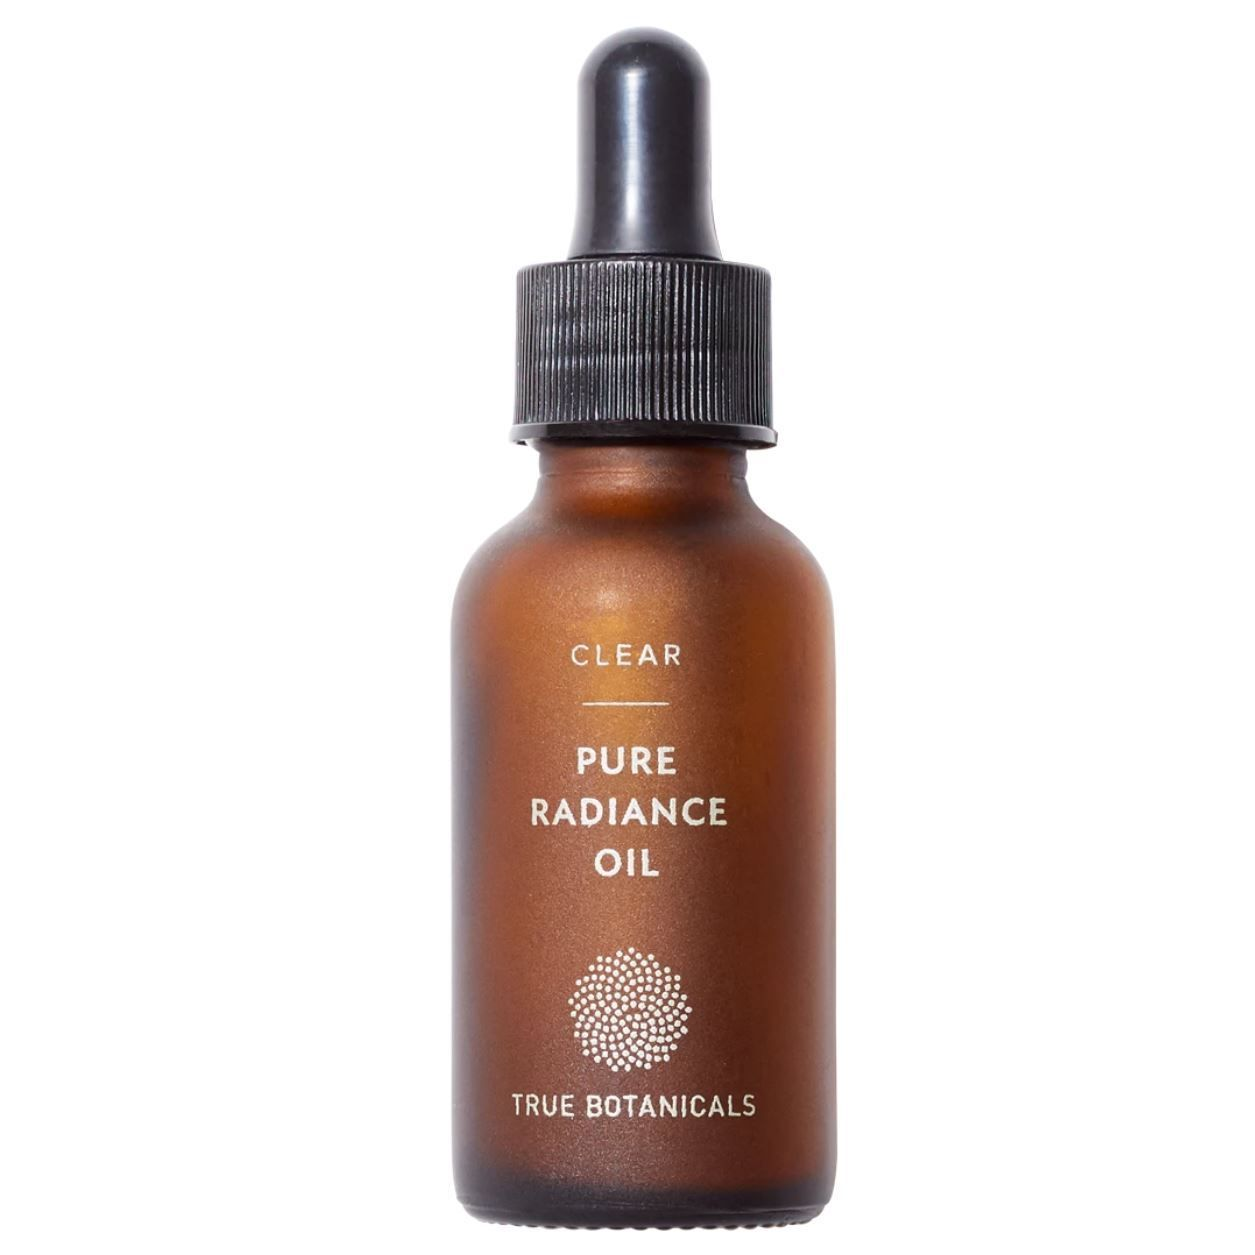 true botanicals pure radiance oil clear review